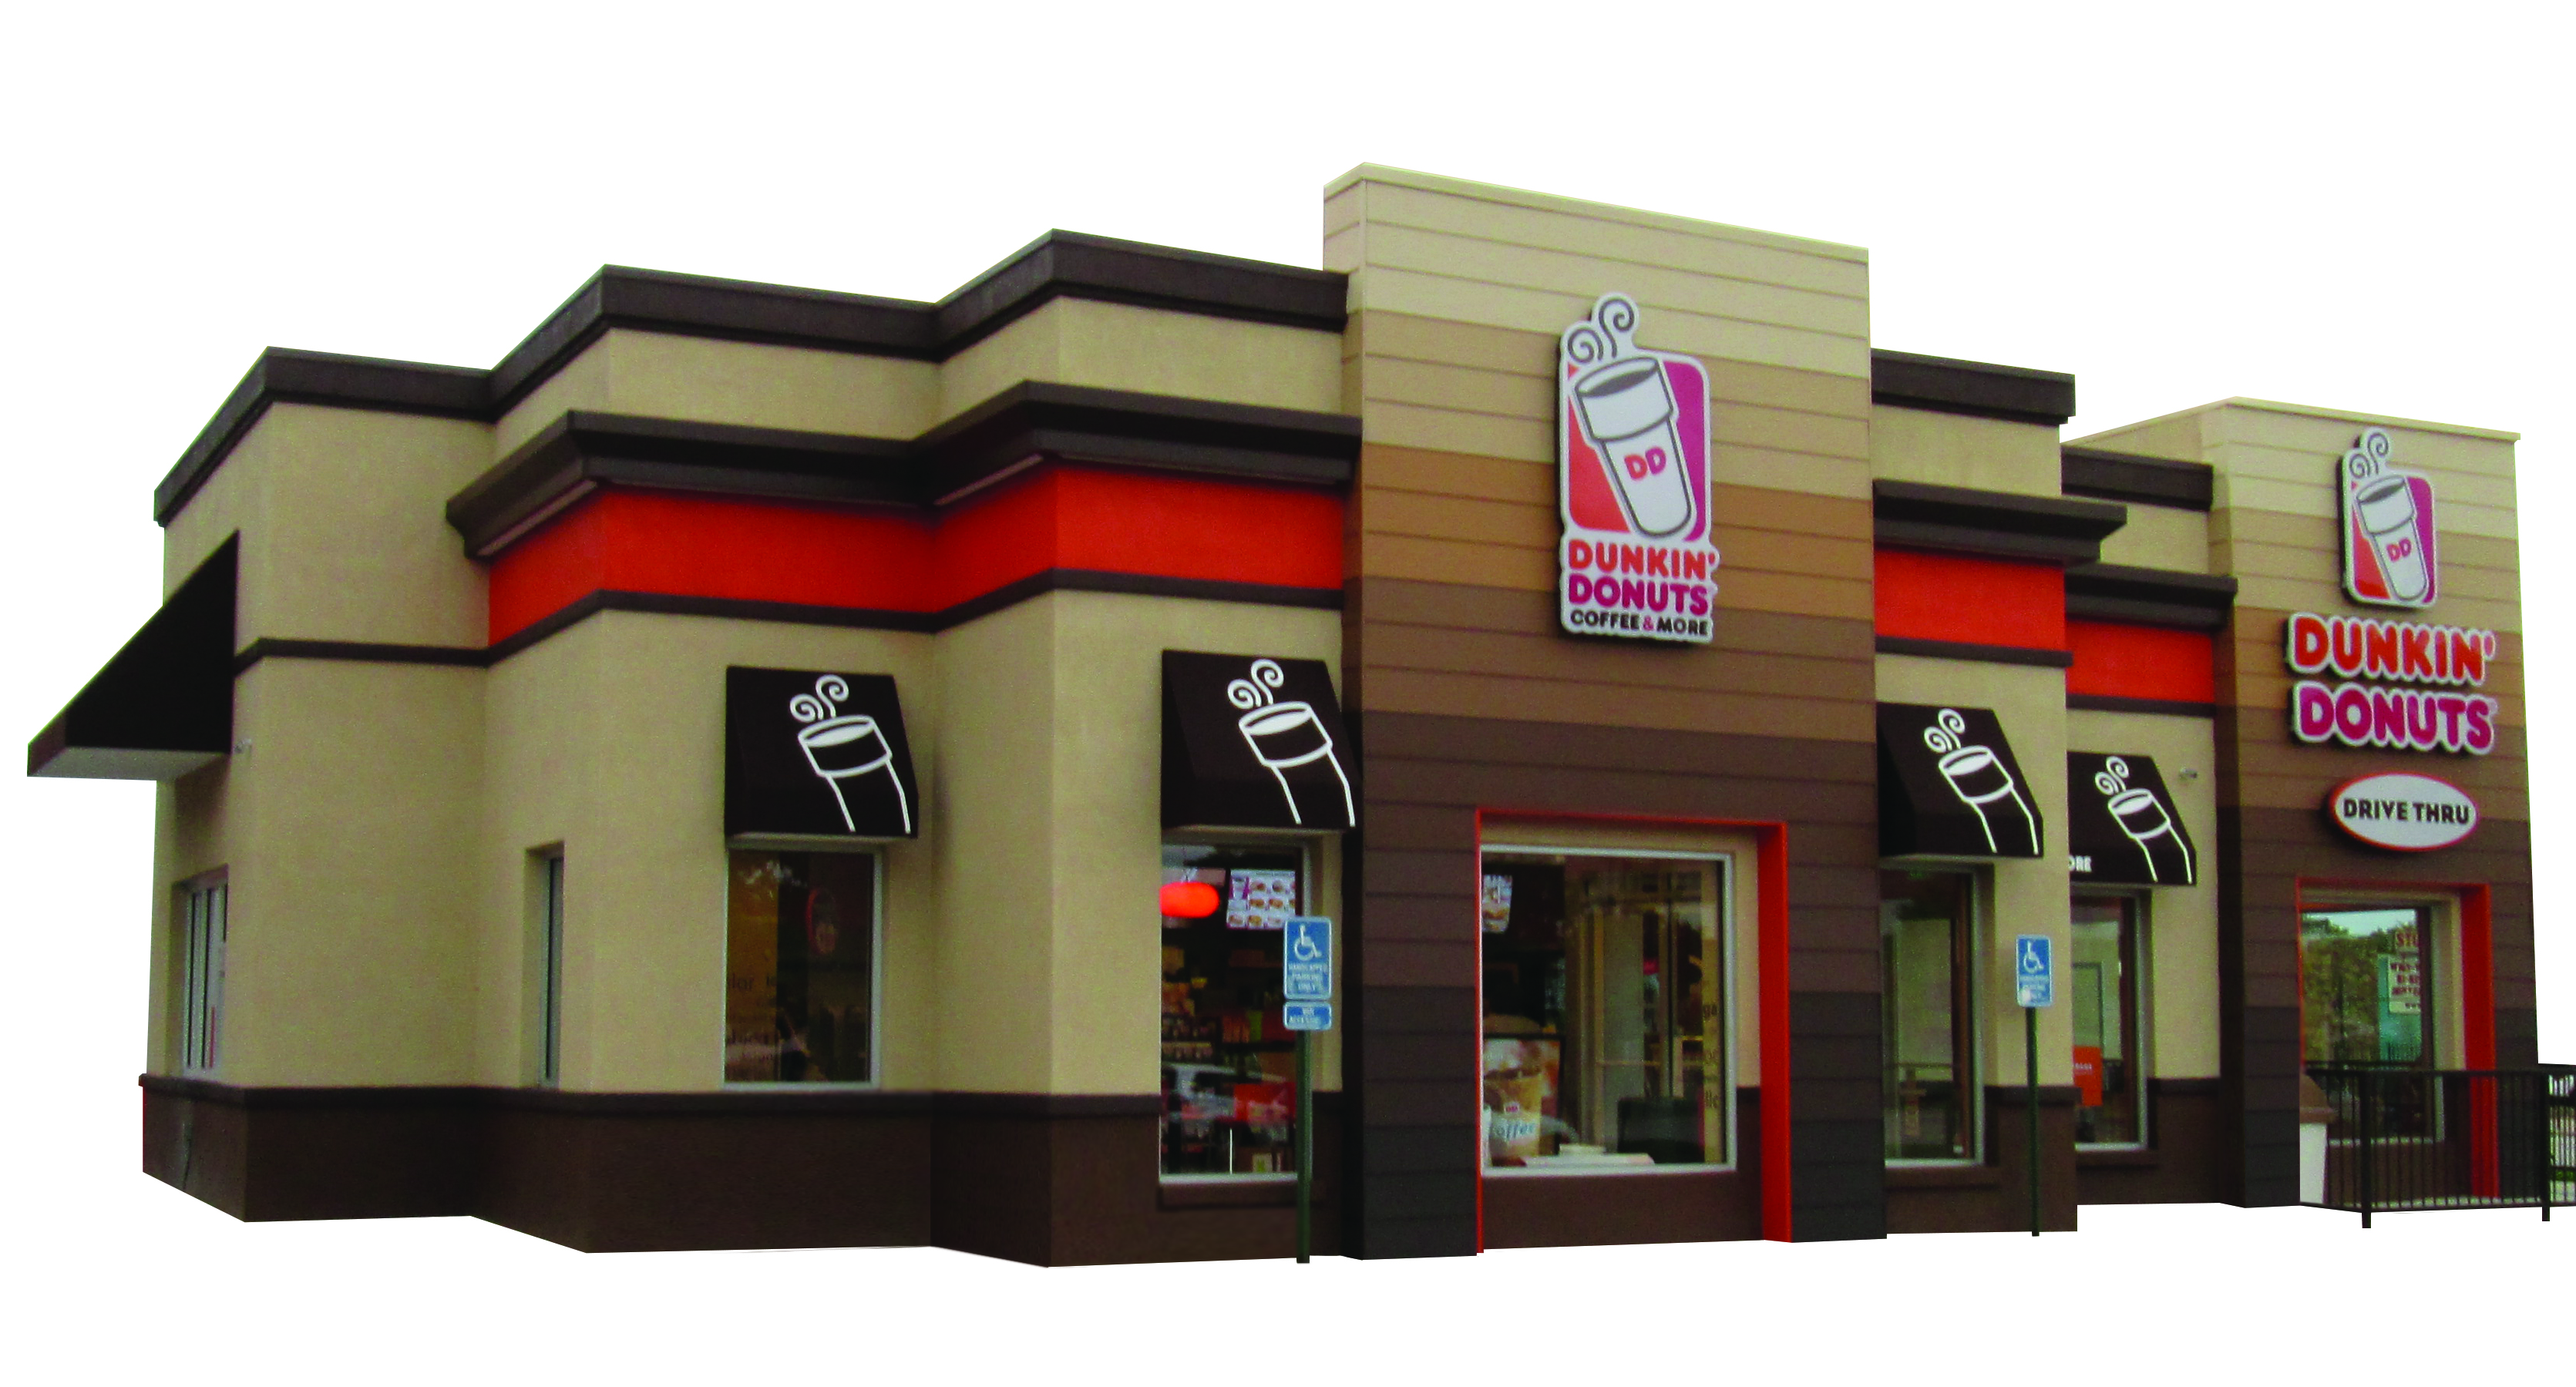 DunkinDonuts -Approved Store Image